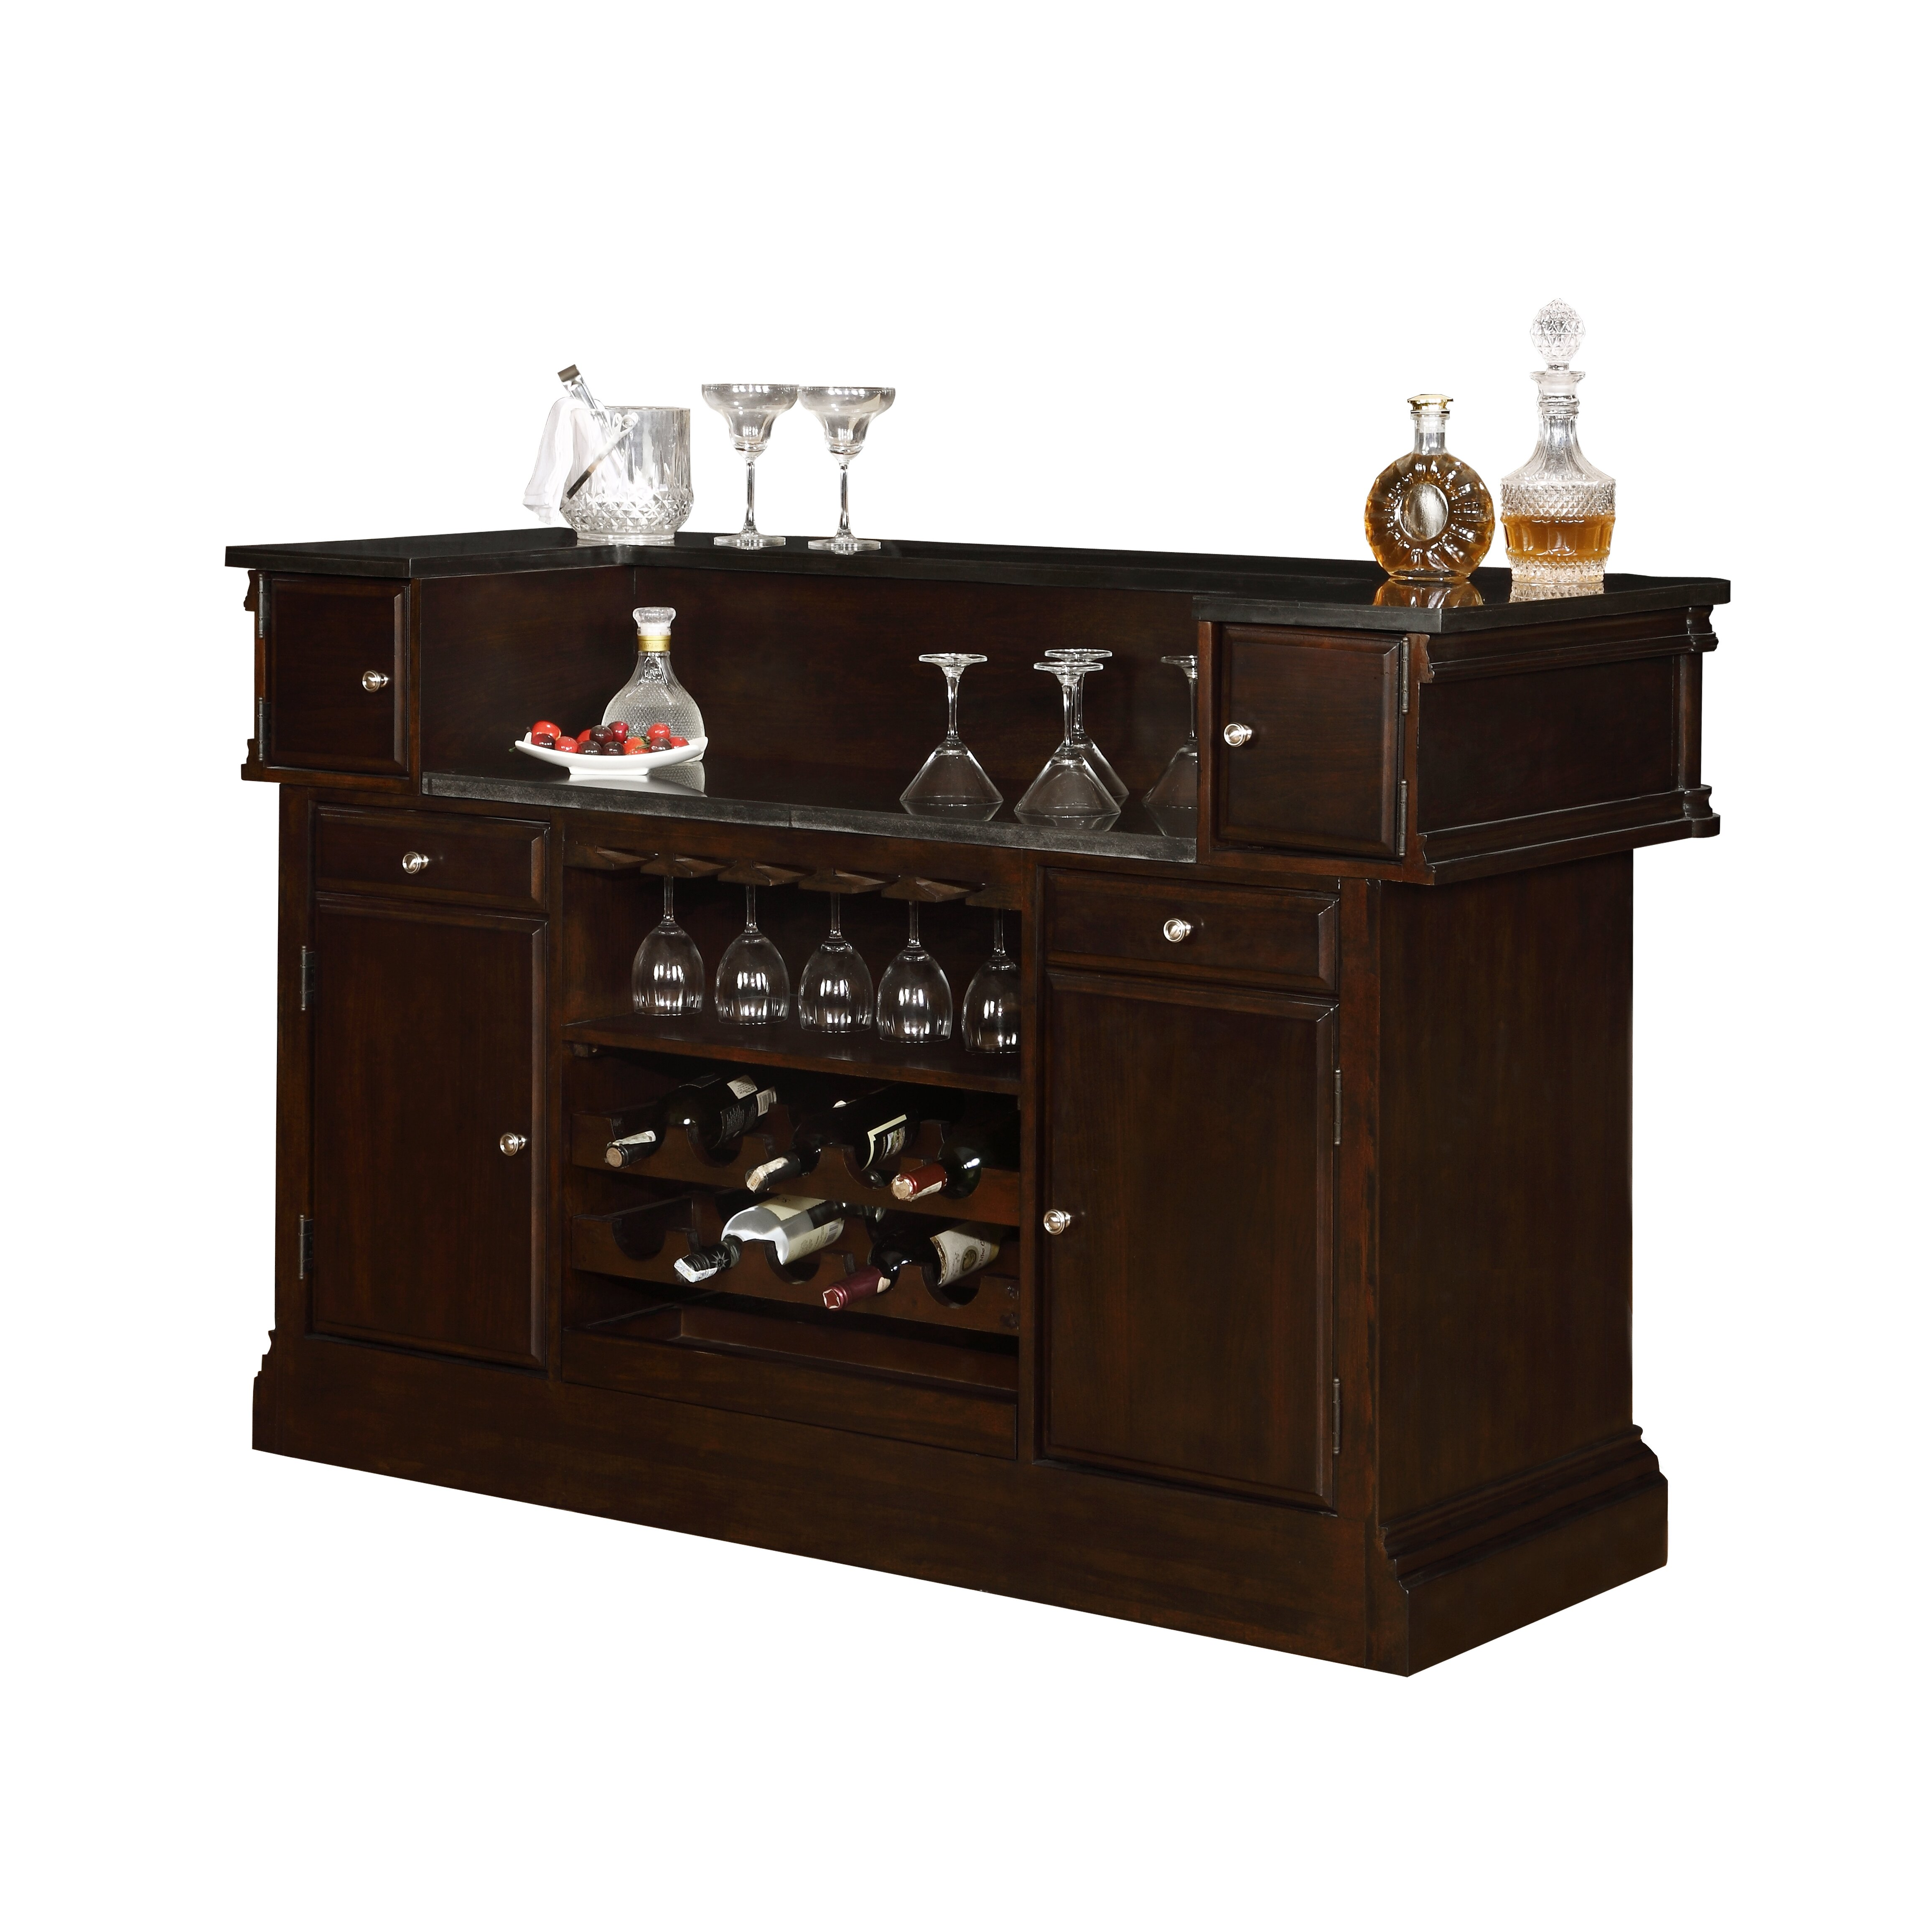 Avalon furniture dundee place bar wayfair for Place furniture